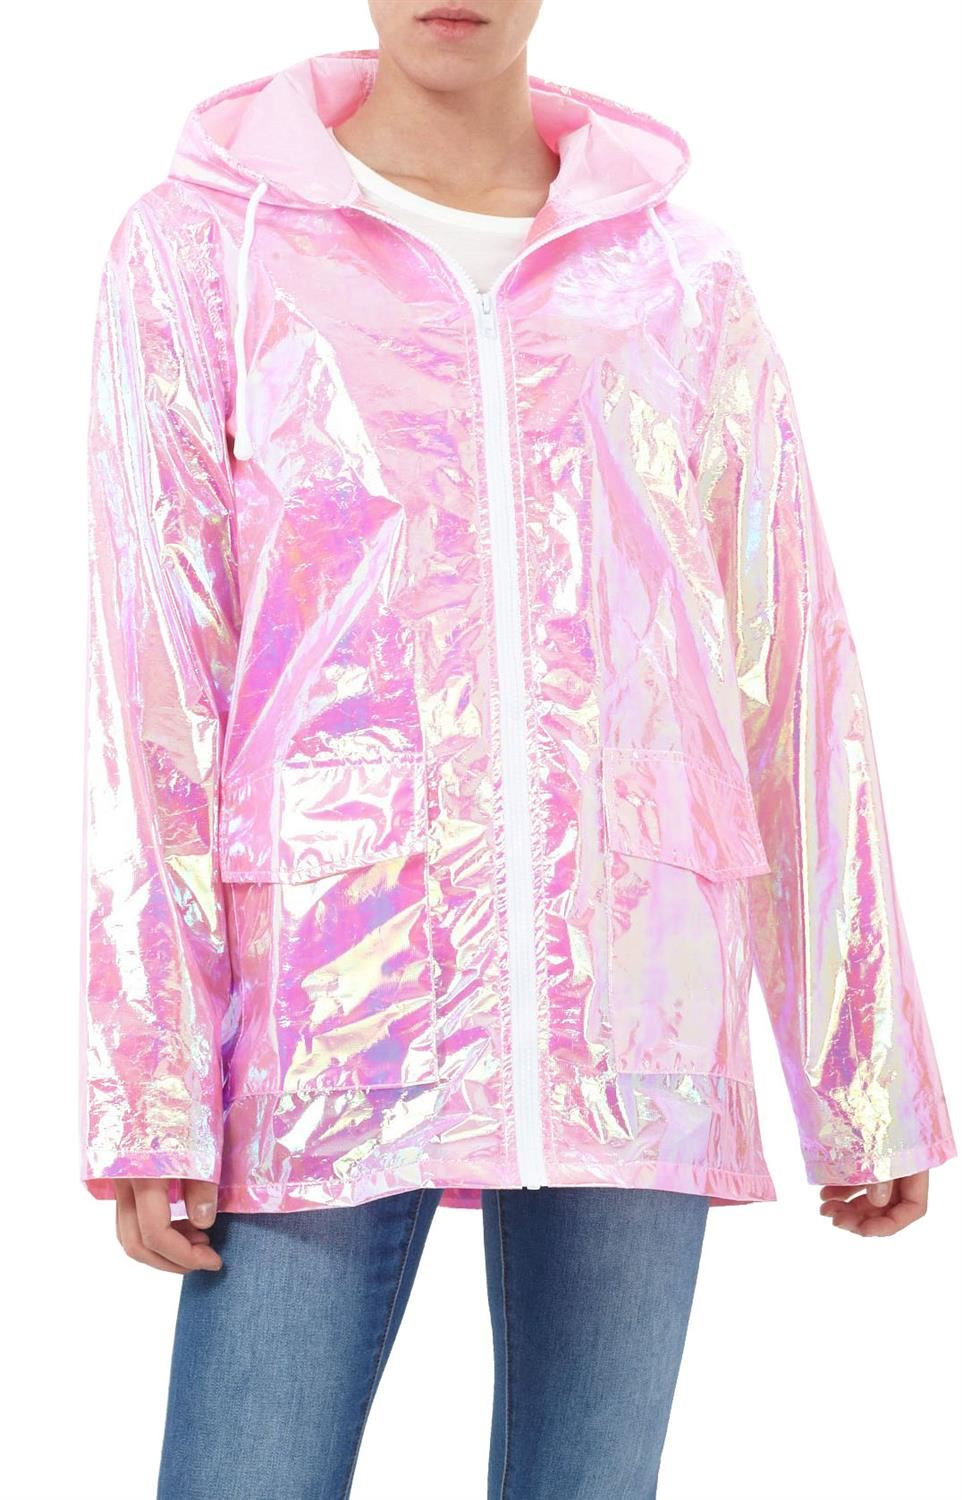 Womens-Waterproof-Holographic-Zipped-Neon-Festival-Mac-Jacket-Parka-Raincoat thumbnail 3